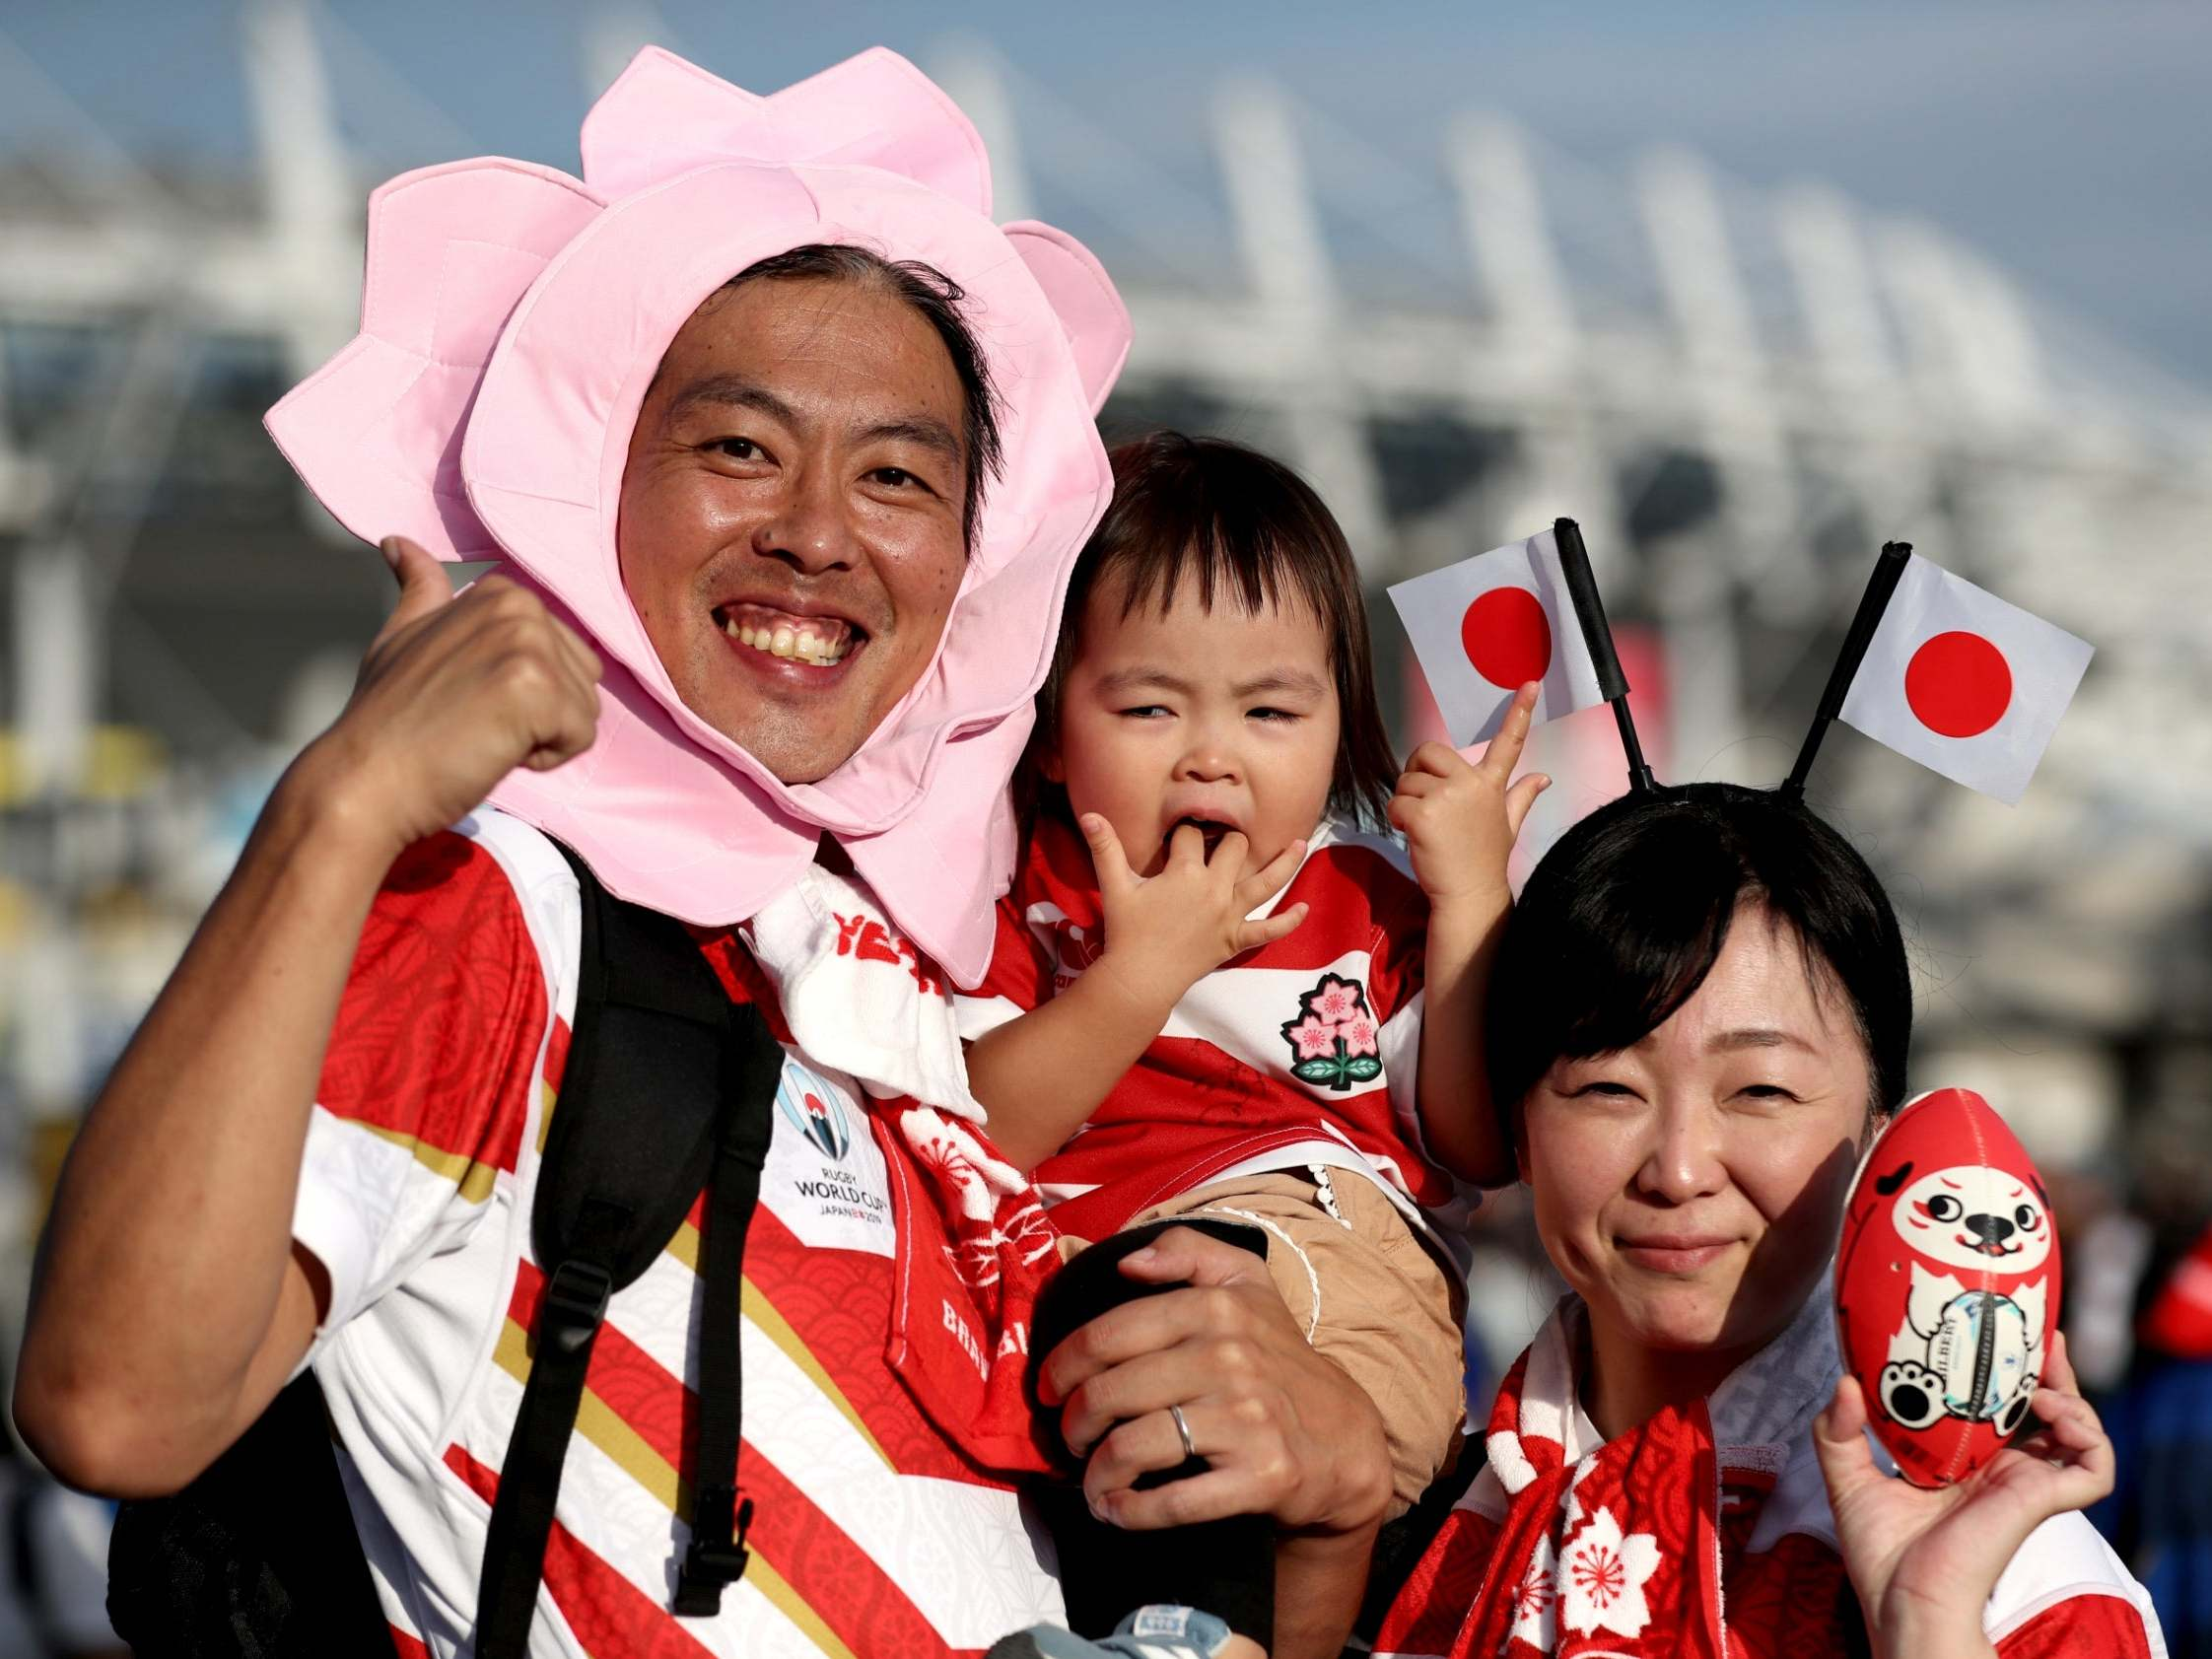 Rugby World Cup live stream: How to watch 2019 opening ceremony online and on TV